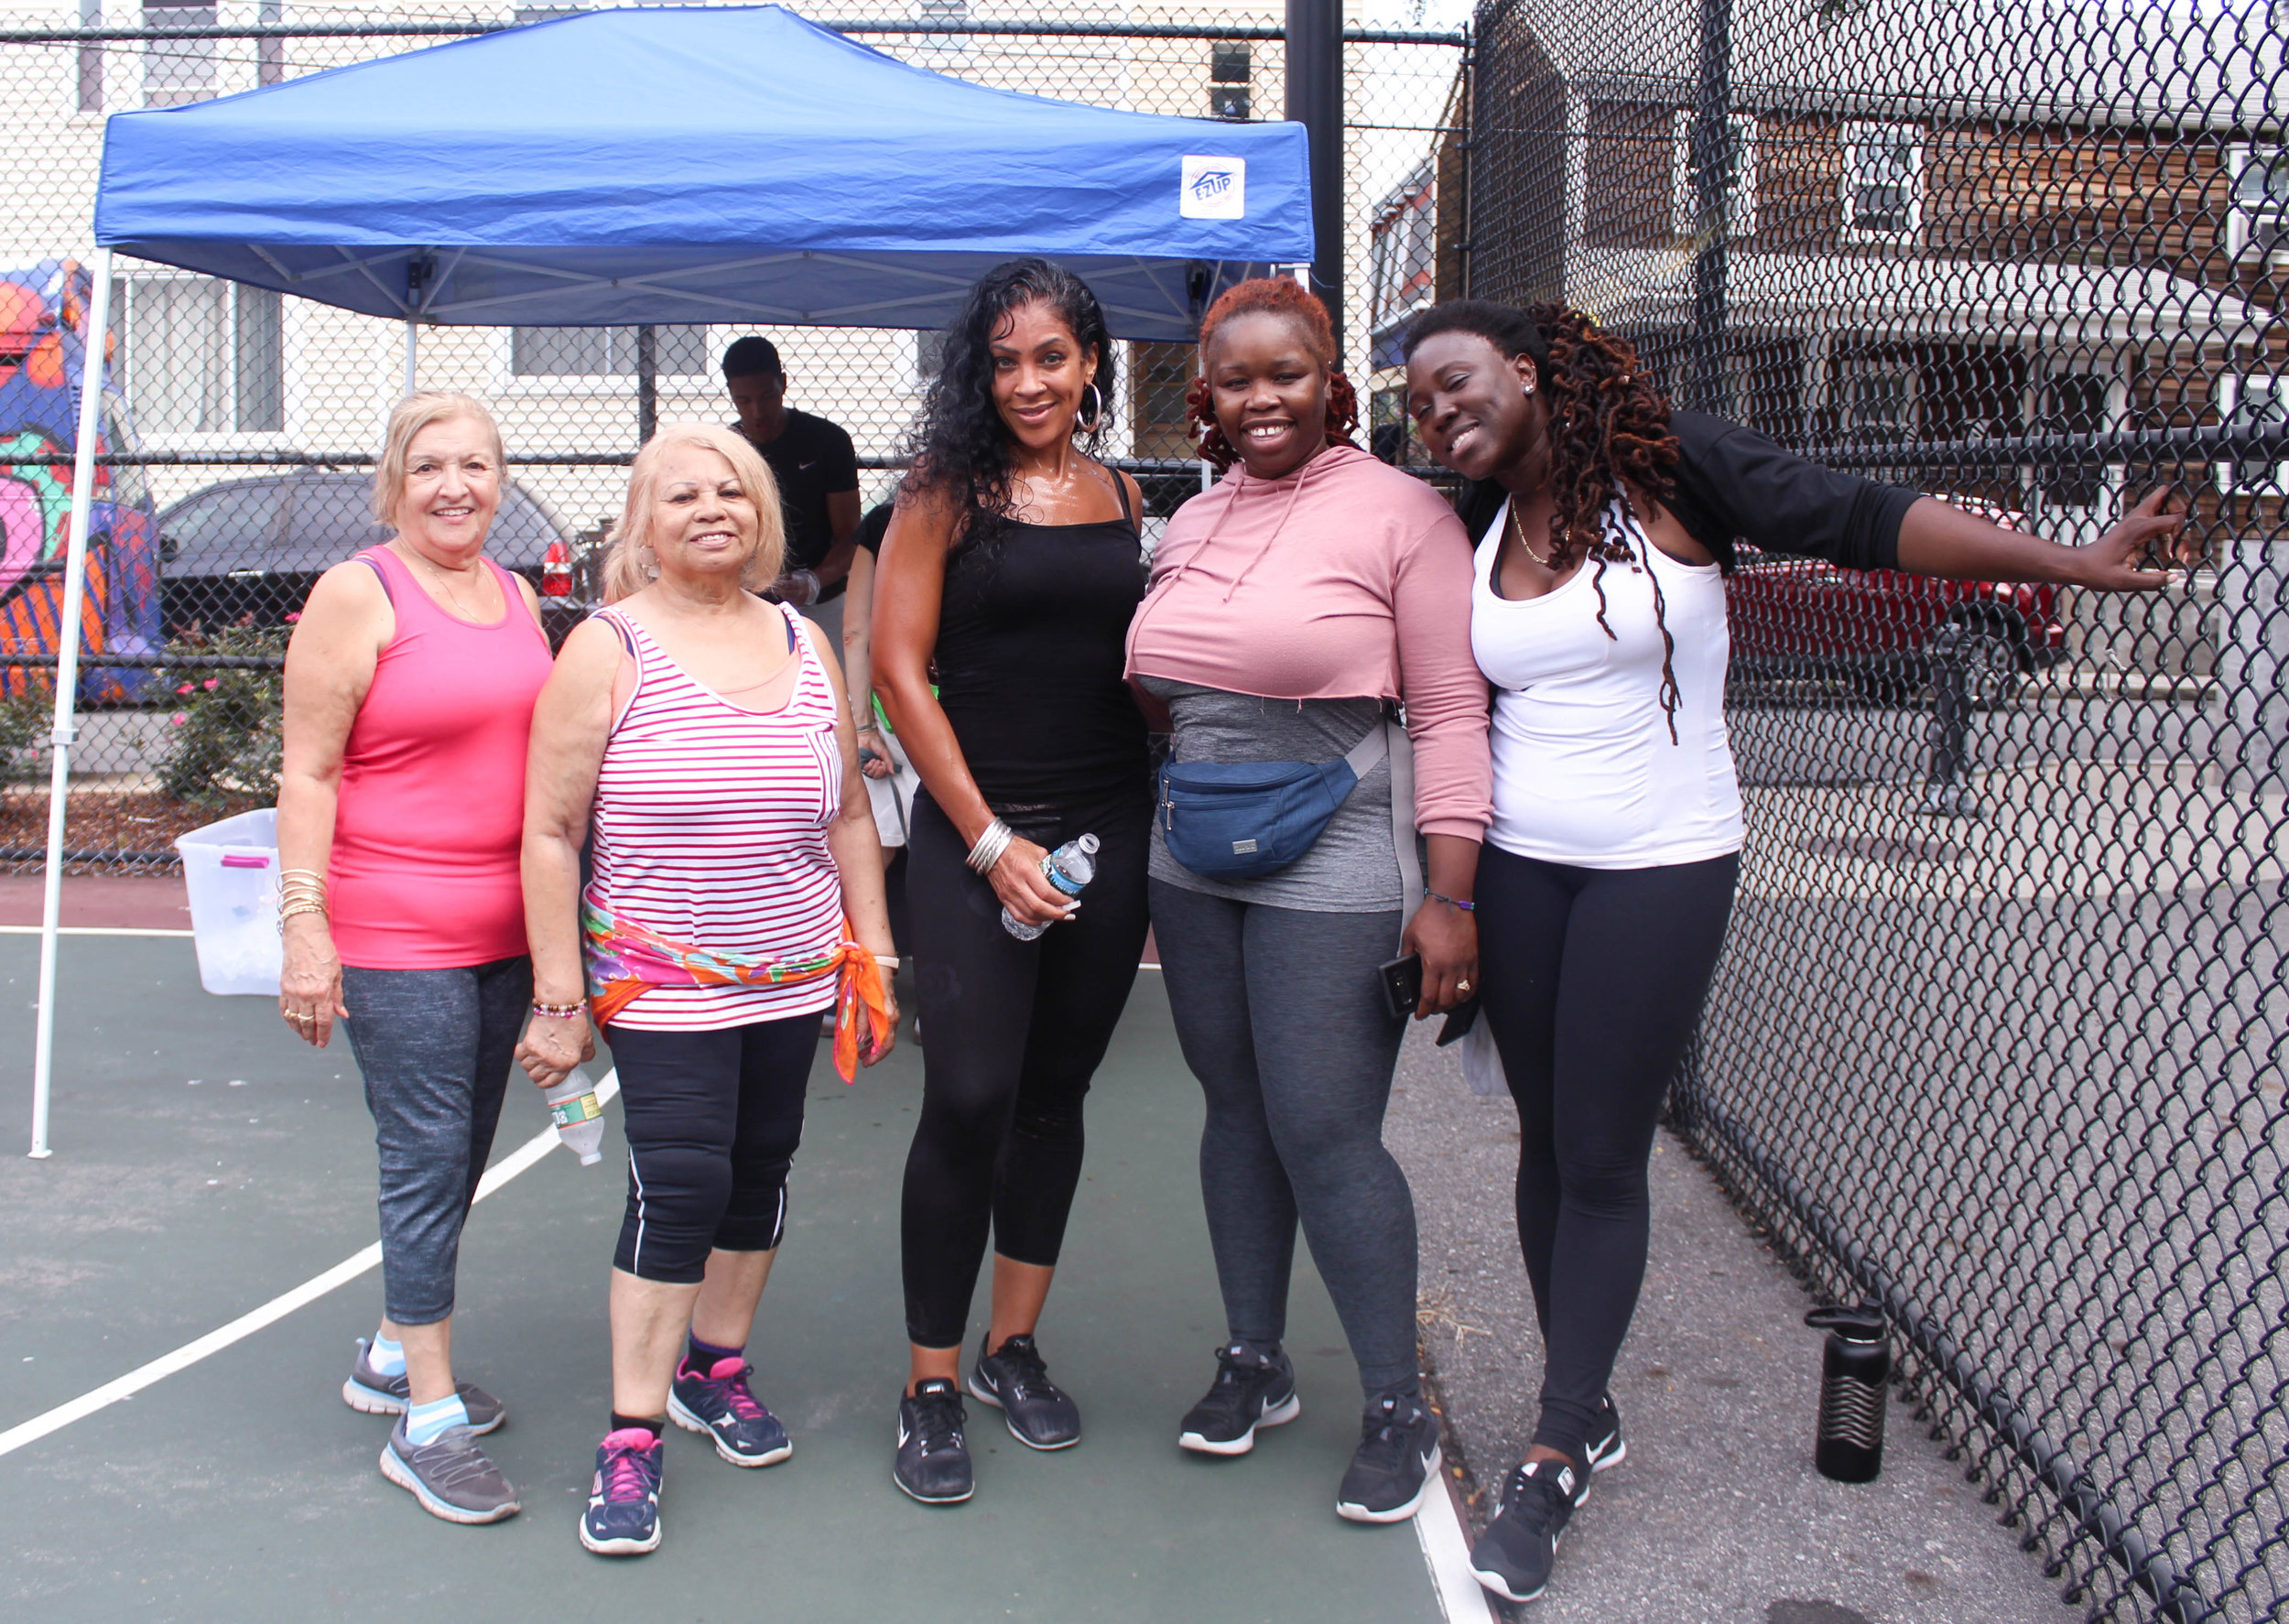 Fitness in the Park (11 of 21).jpg